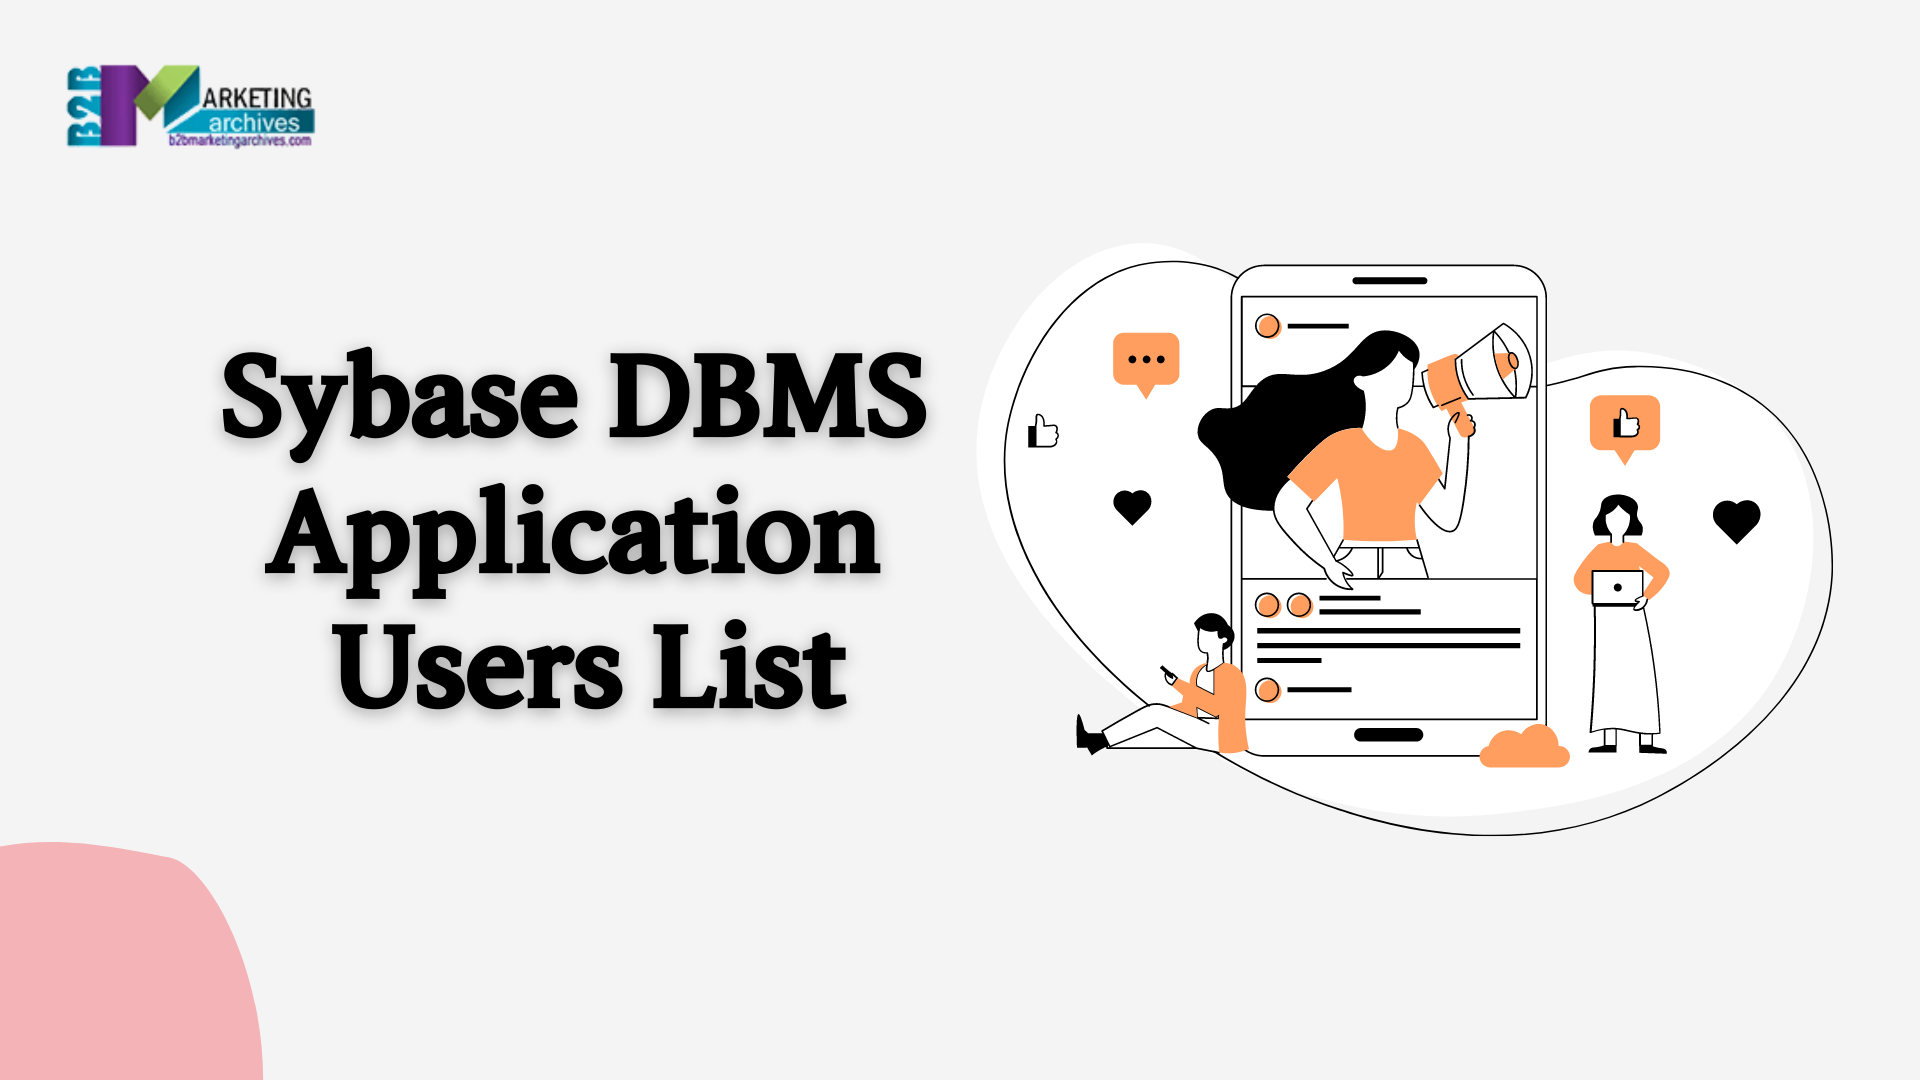 Sybase DBMS Application Users List